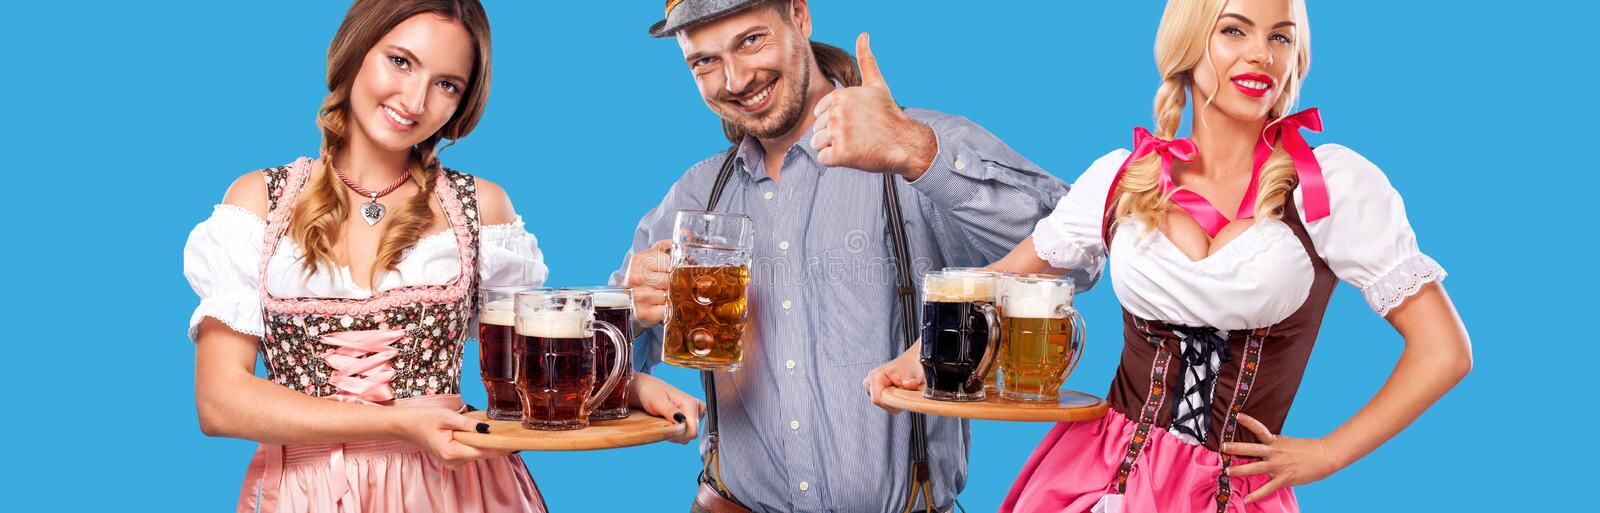 Portrait of happy Oktoberfest man and two women, wearing a traditional Bavarian clothes, serving big beer mugs on blue stock photos